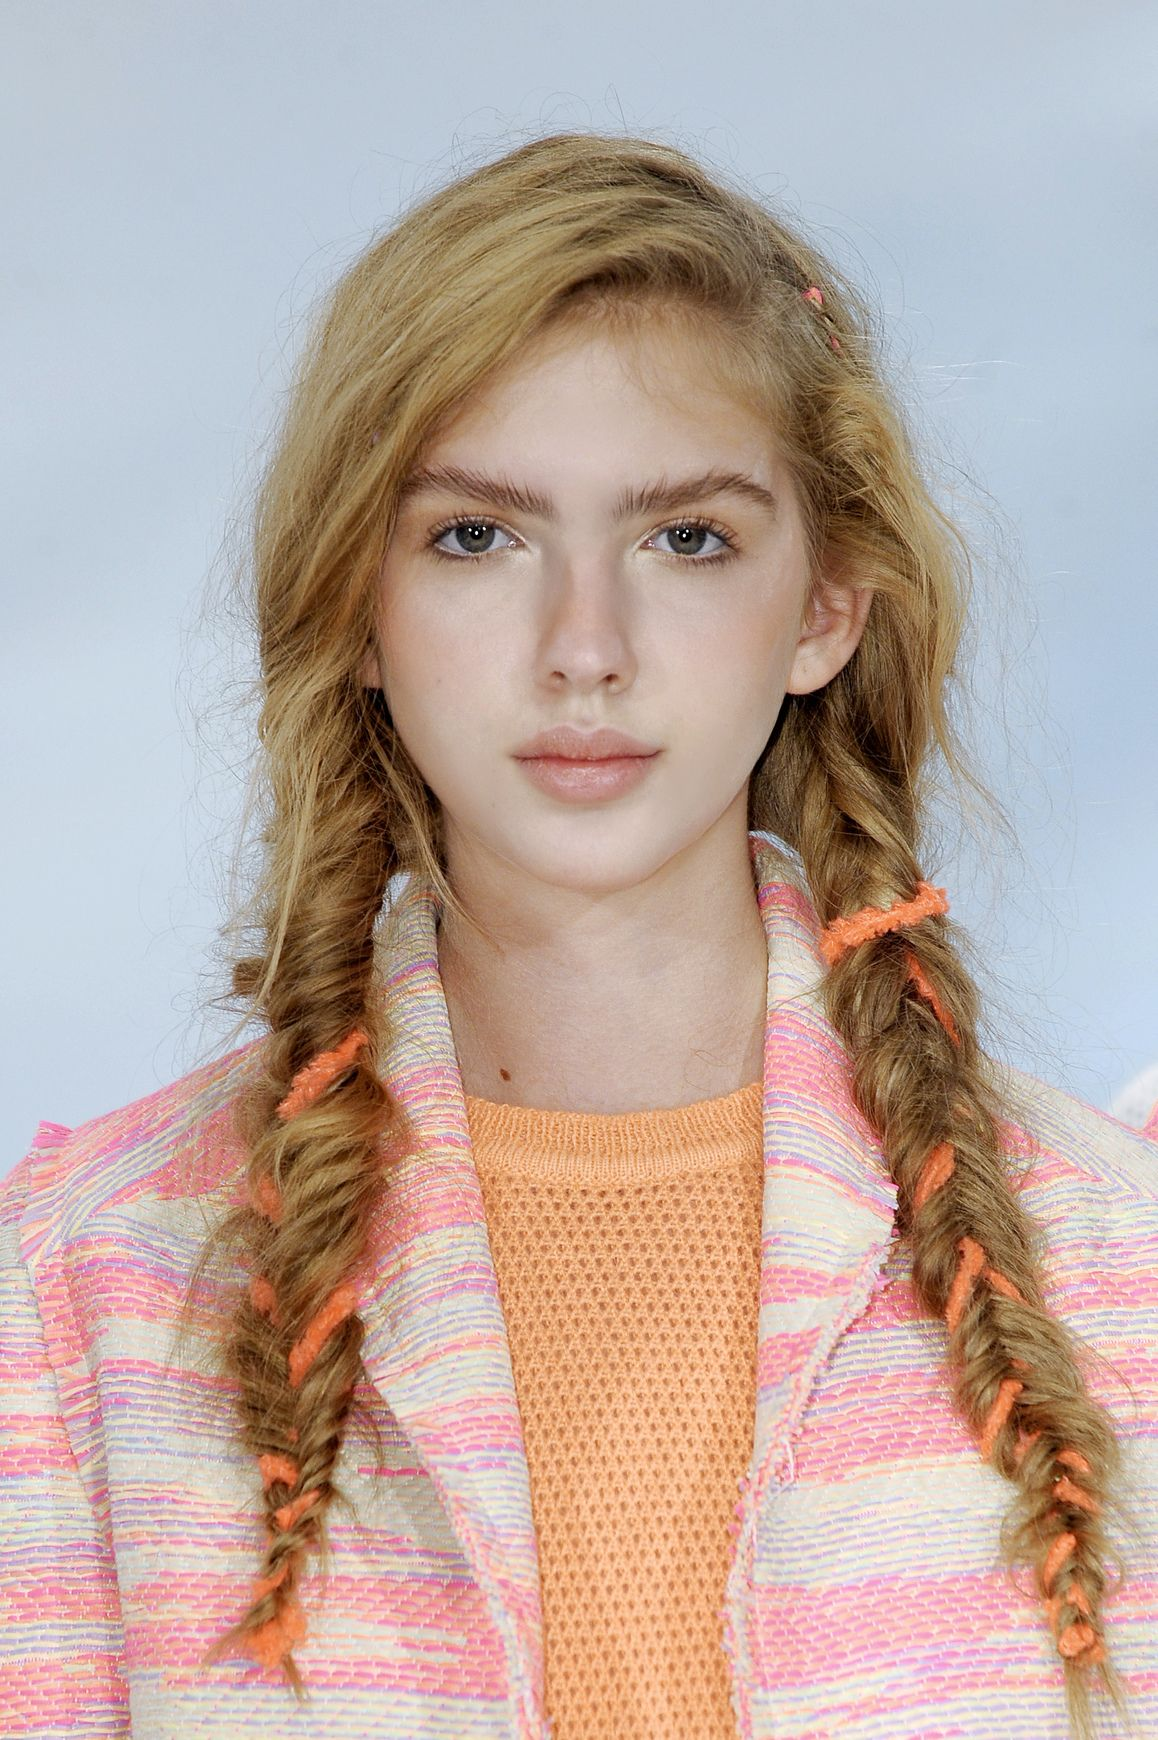 If you're stumped on how to wear your hair try the versatile braid! #braids #hair #fashion #look